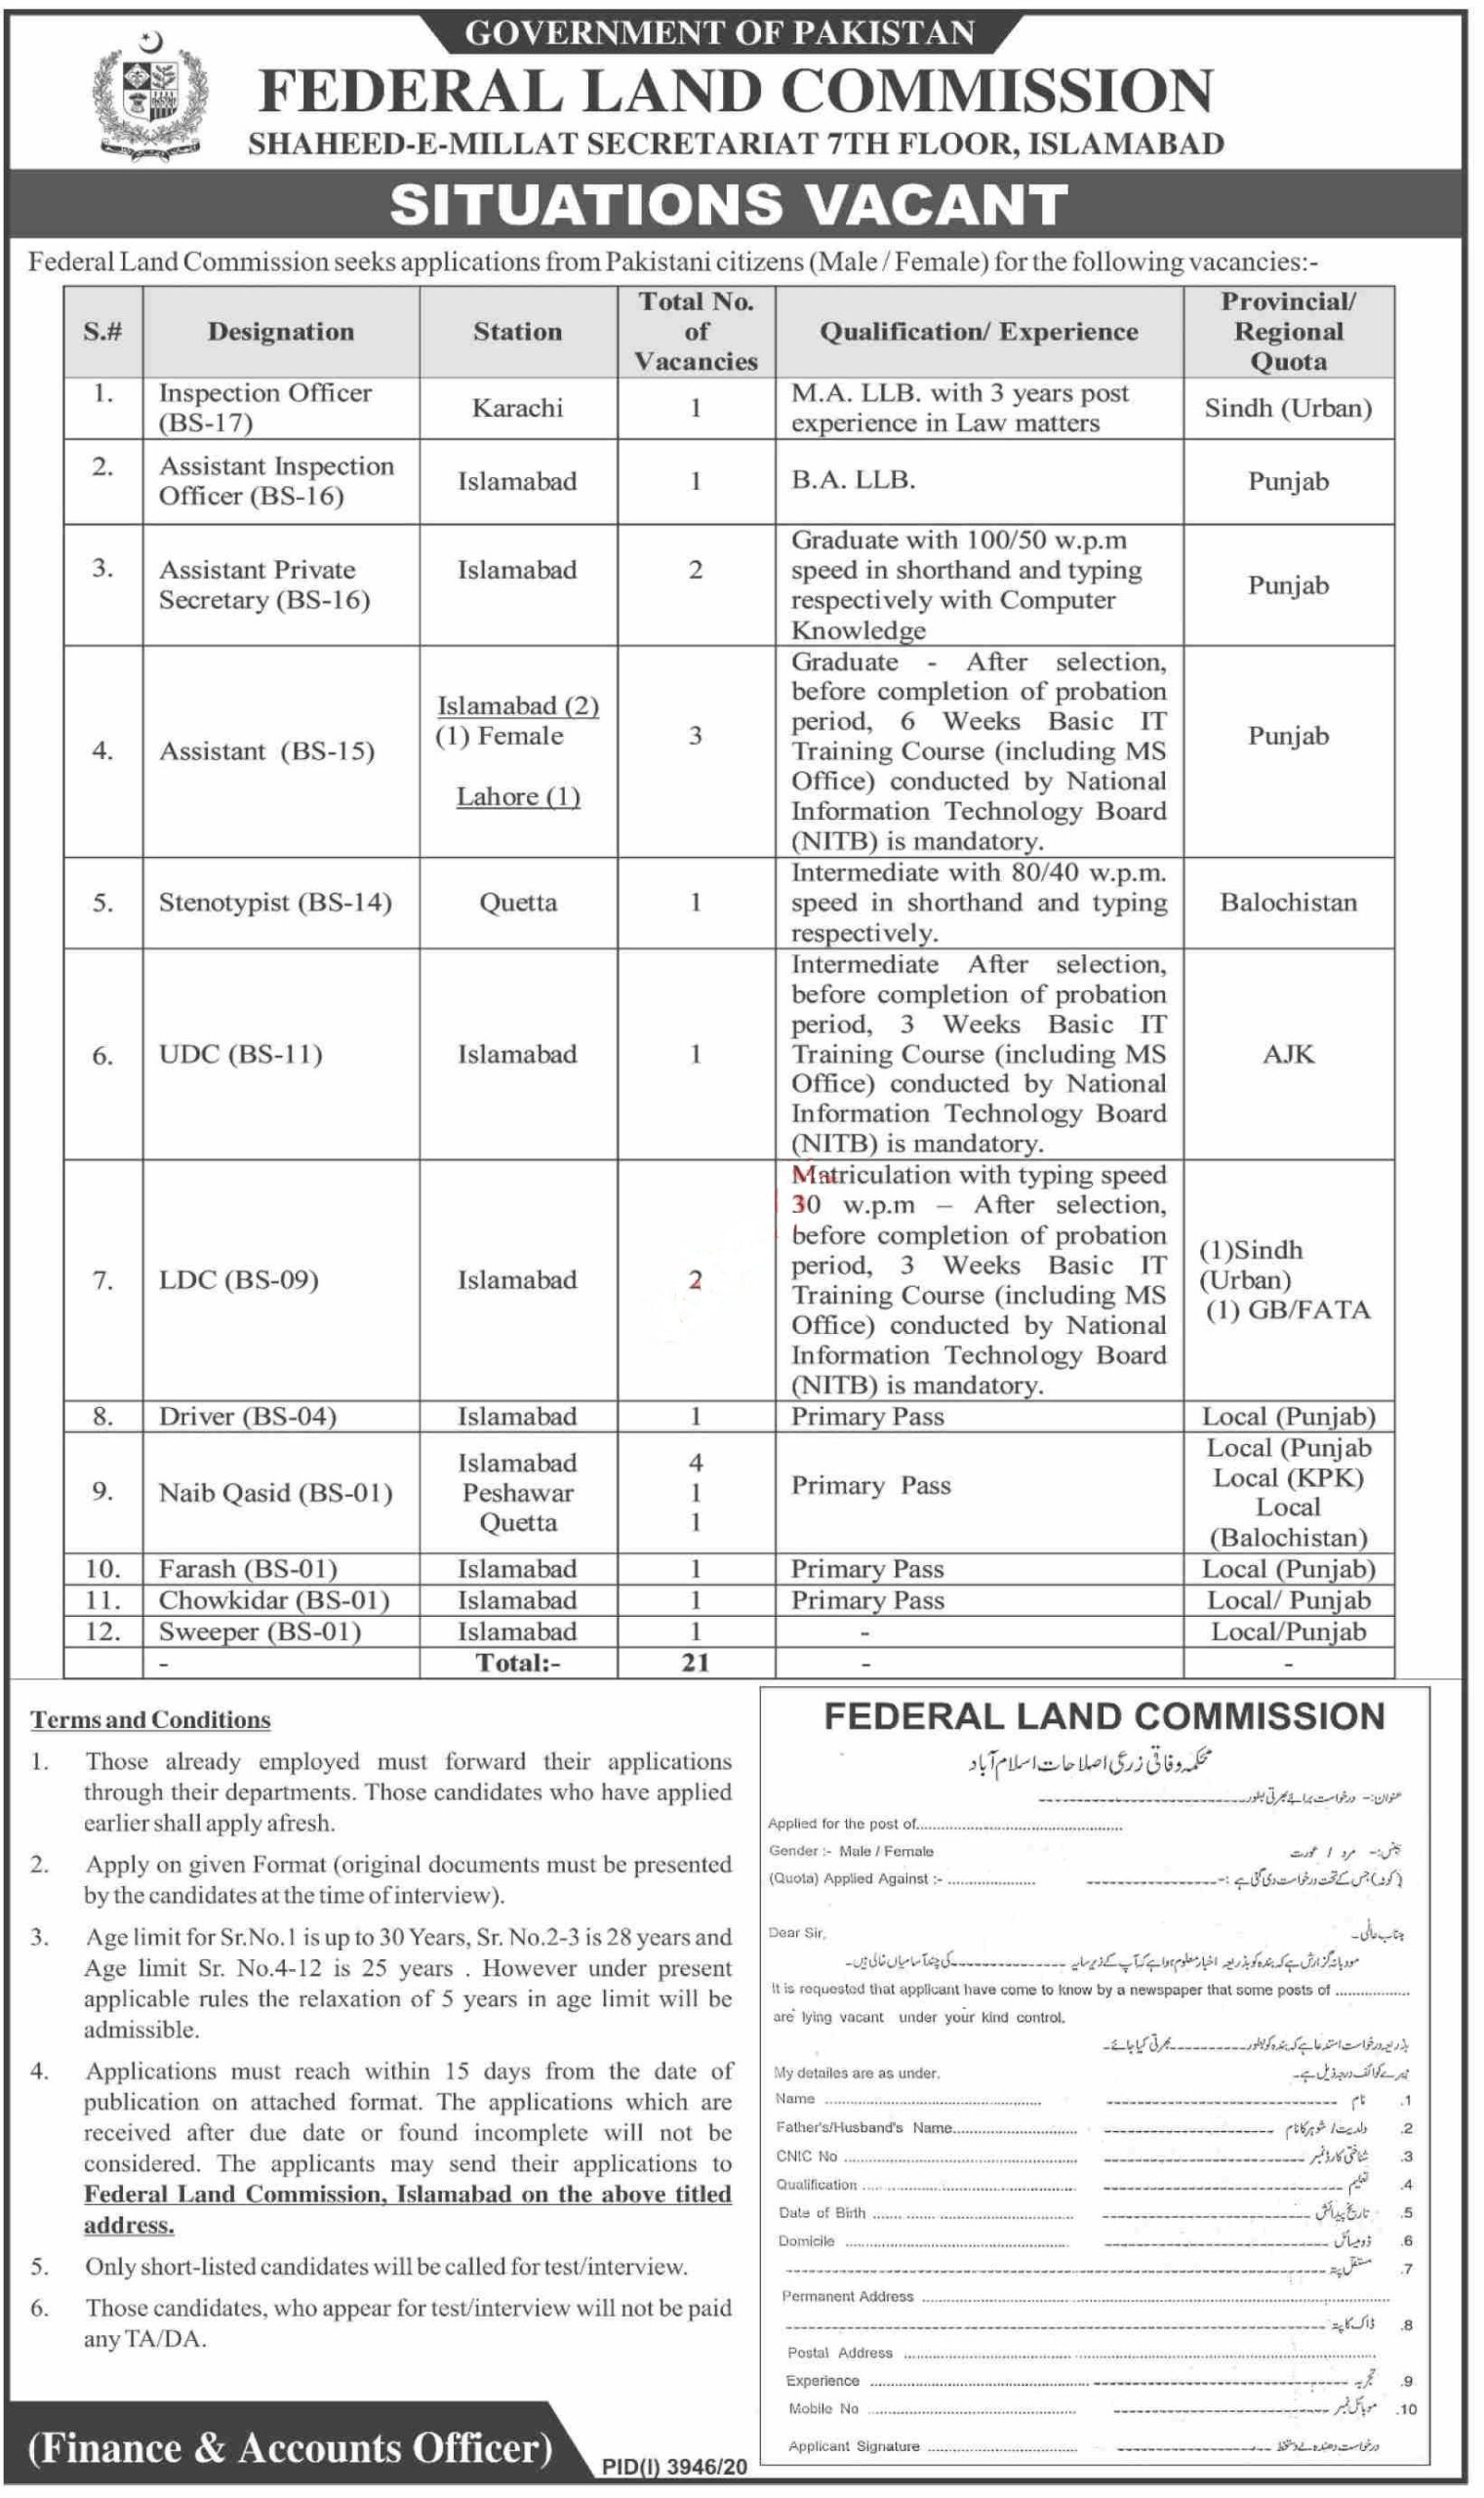 Federal Land Commission Jobs Islamabad